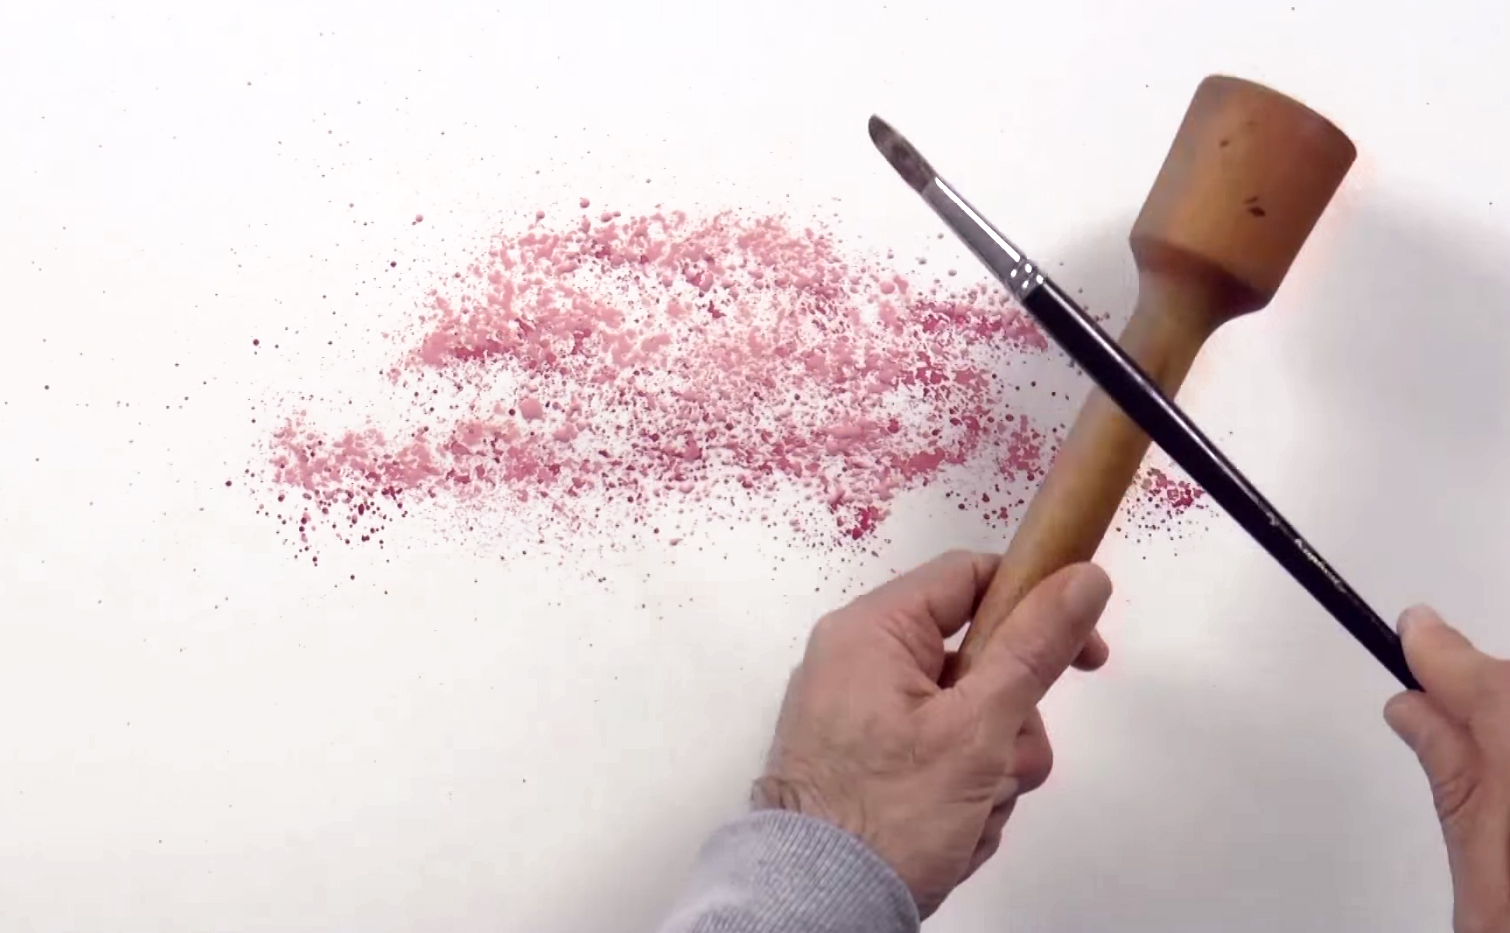 Drawn sakura blossom watercolor Technique 3 Cherry Three Splatter